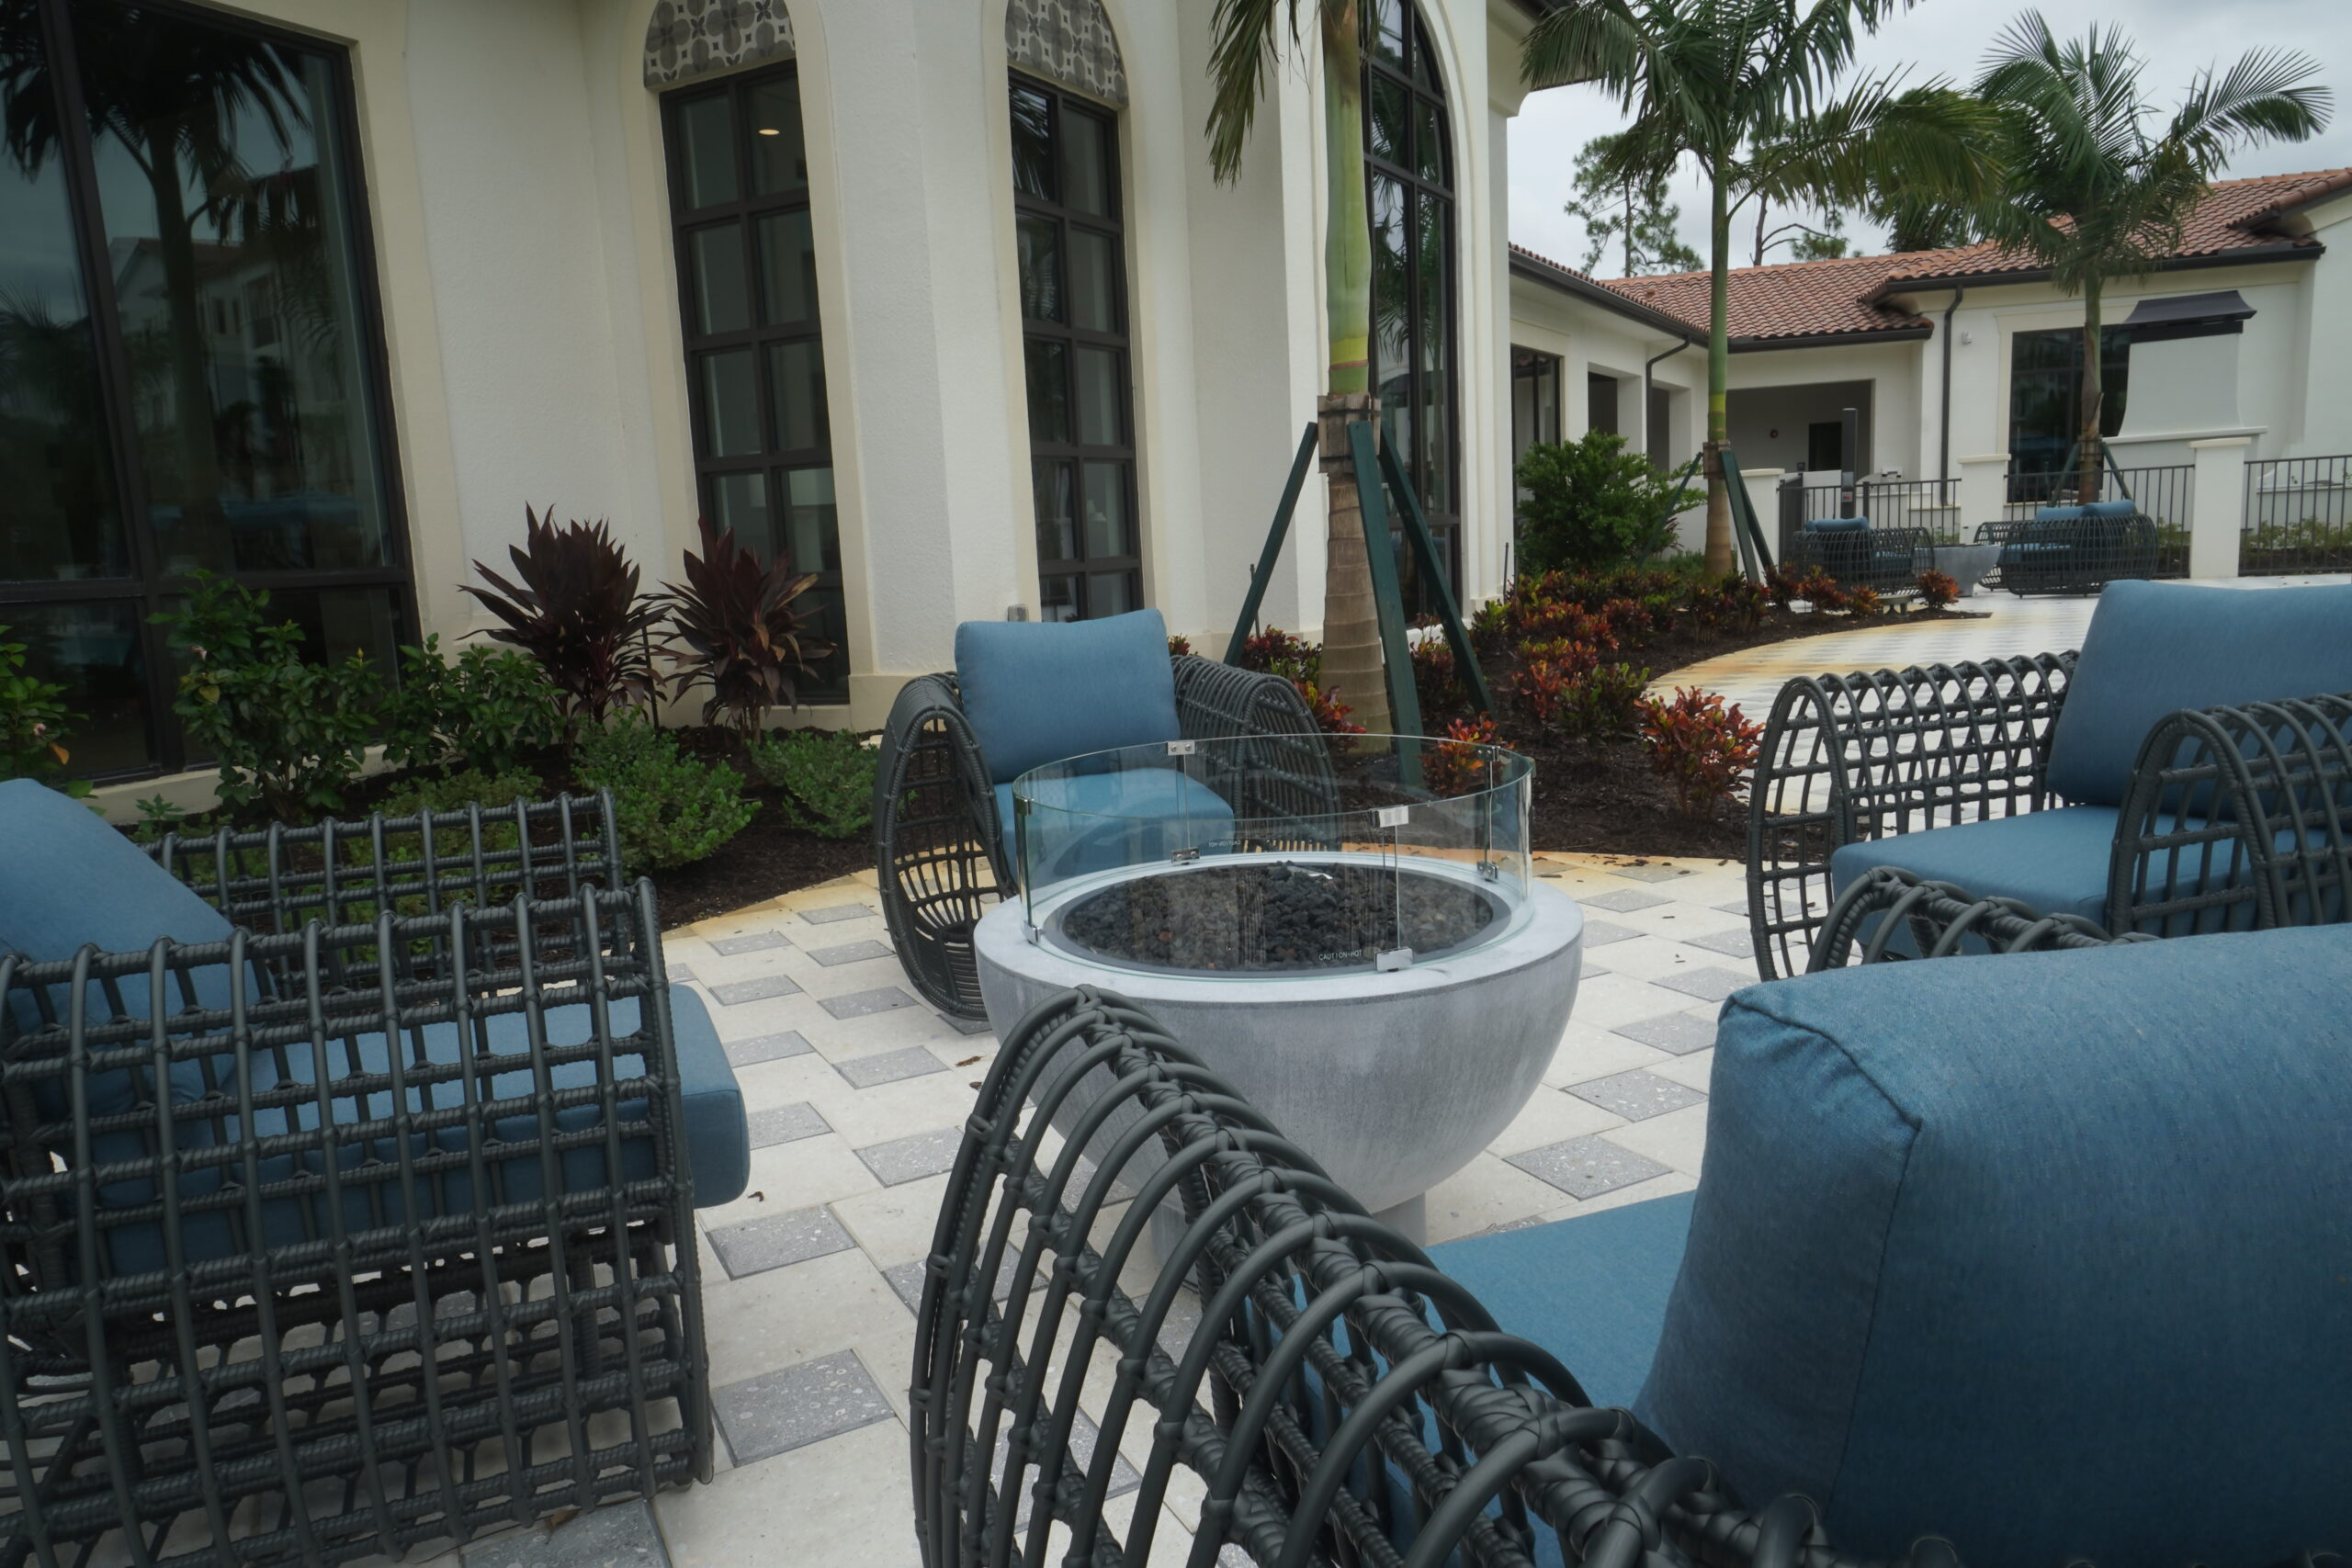 Commercial FirePit at Lago Community